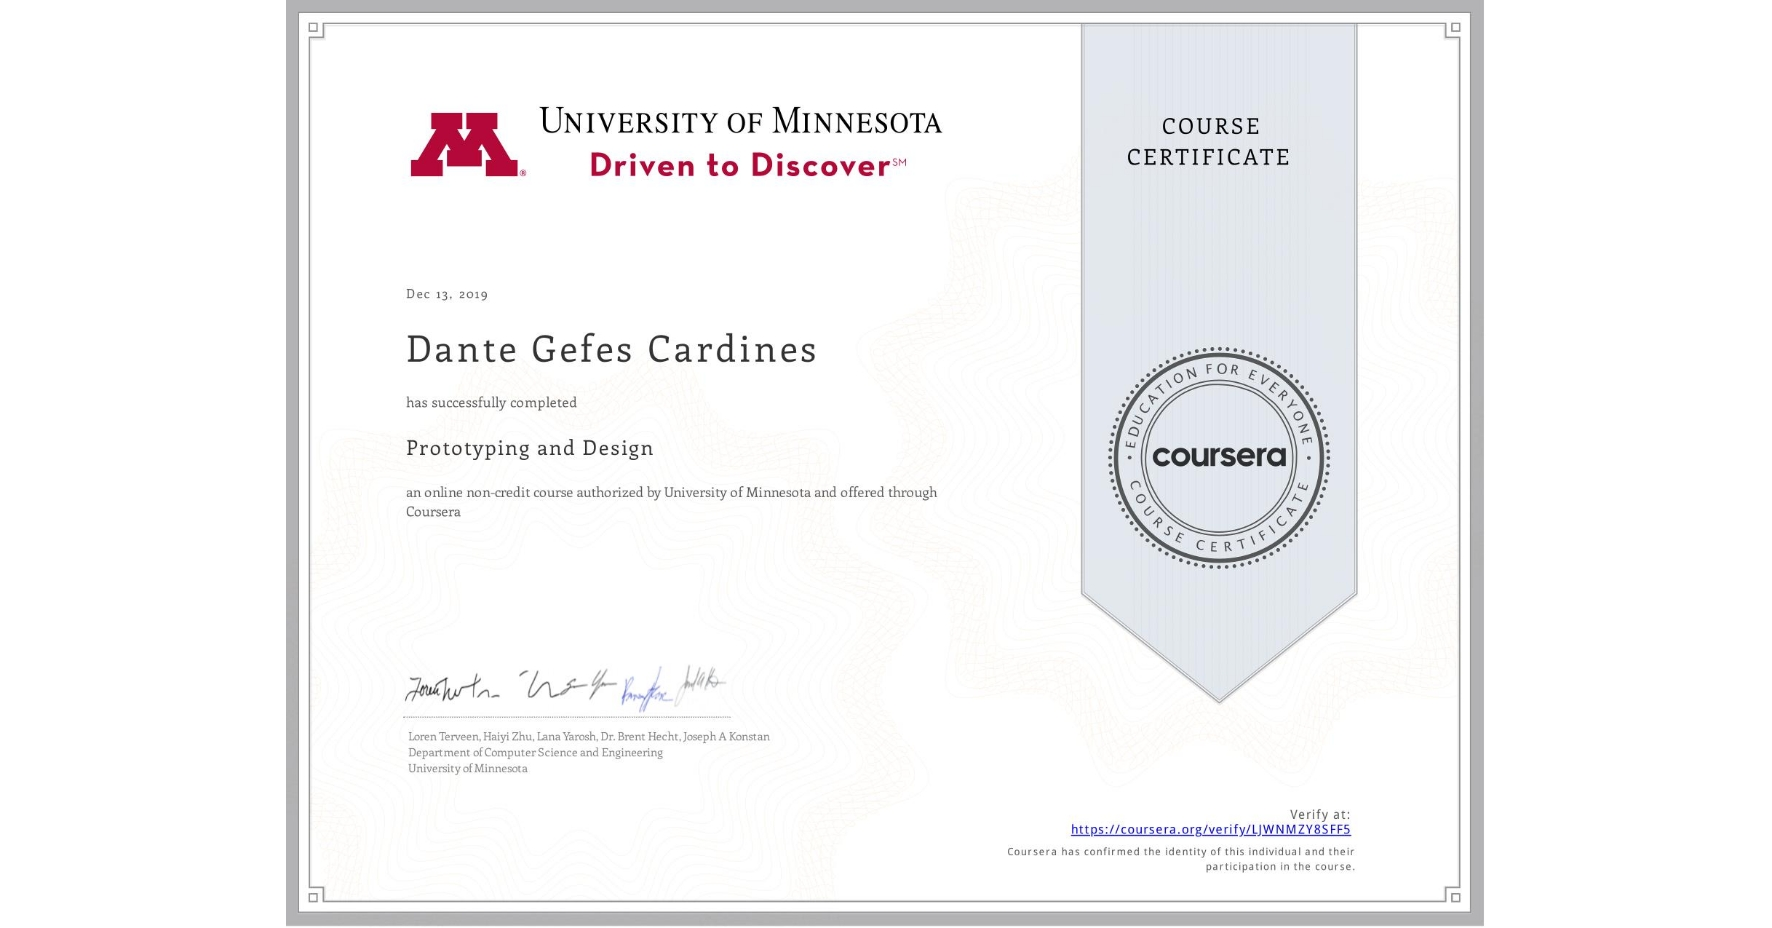 View certificate for Dante Gefes Cardines, Prototyping and Design, an online non-credit course authorized by University of Minnesota and offered through Coursera